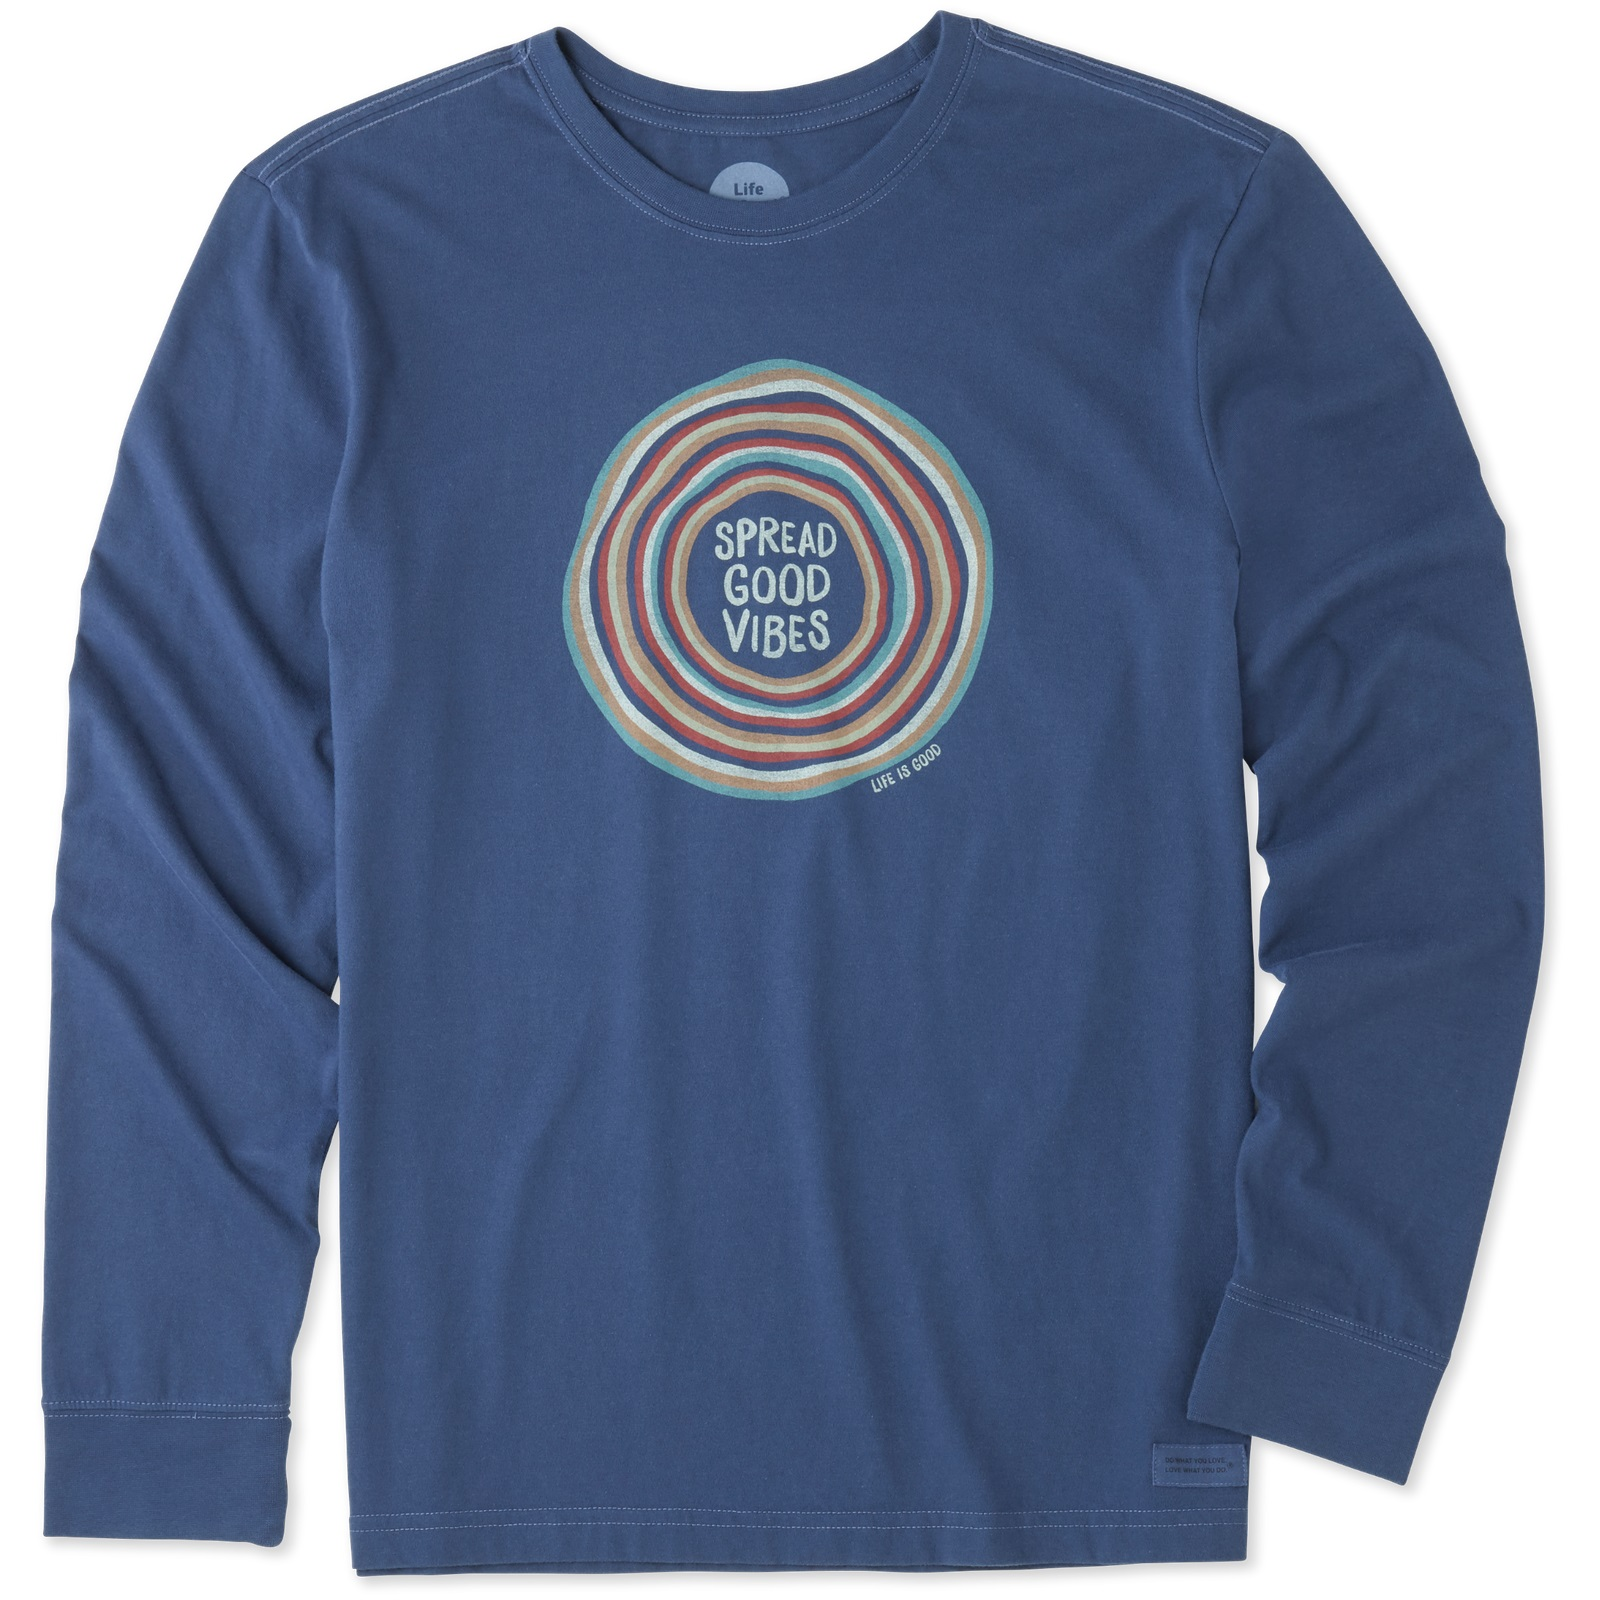 826b52267bd Details about Life is Good. Mens Long Sleeve Crusher Tee  Good Vibes Ripple